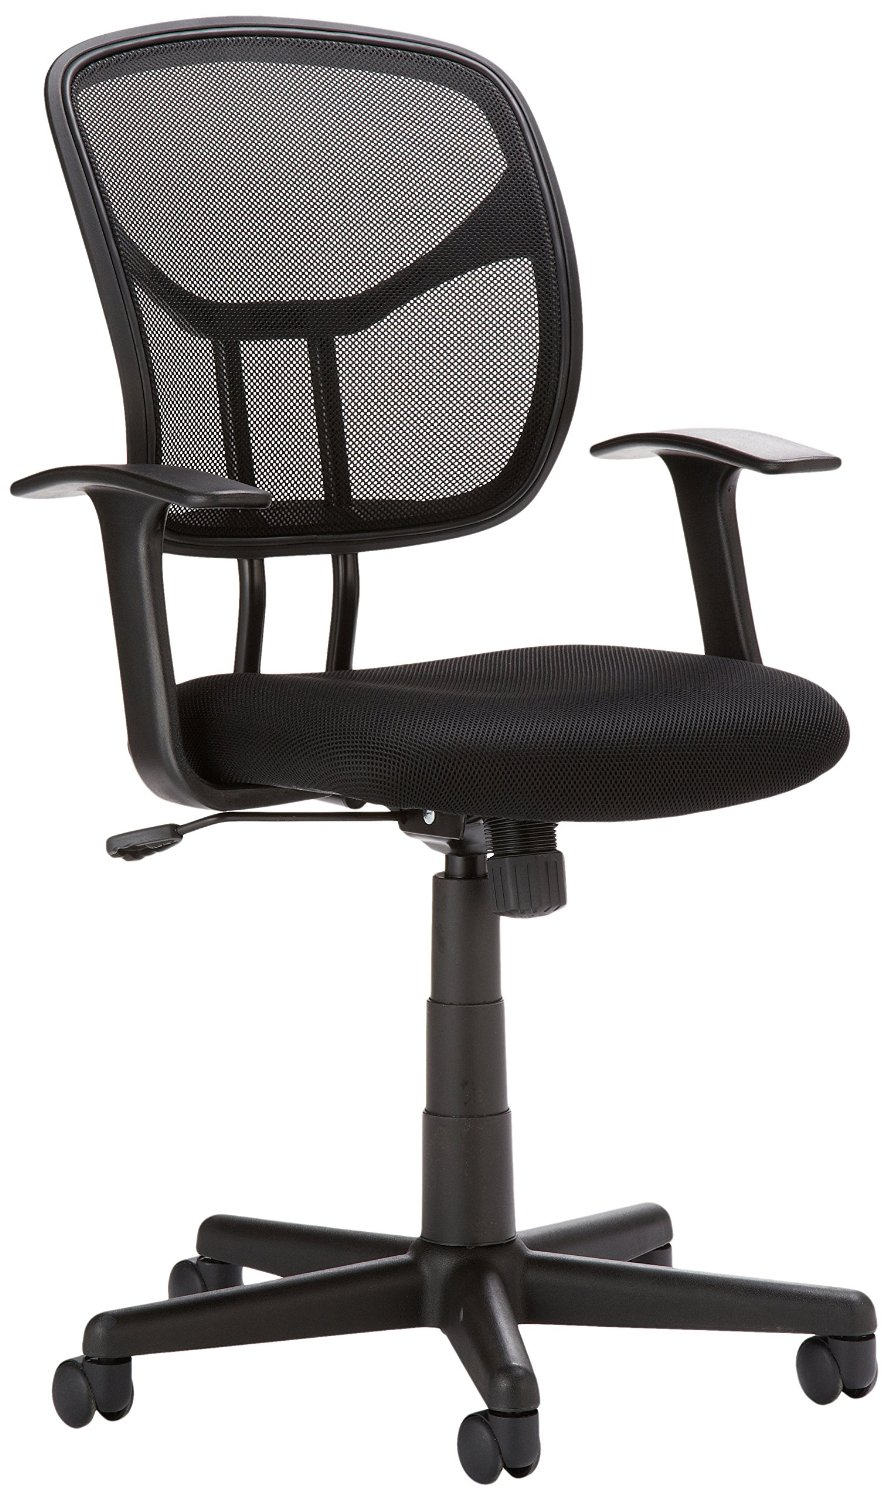 Basic mid-back mesh swivel office chair